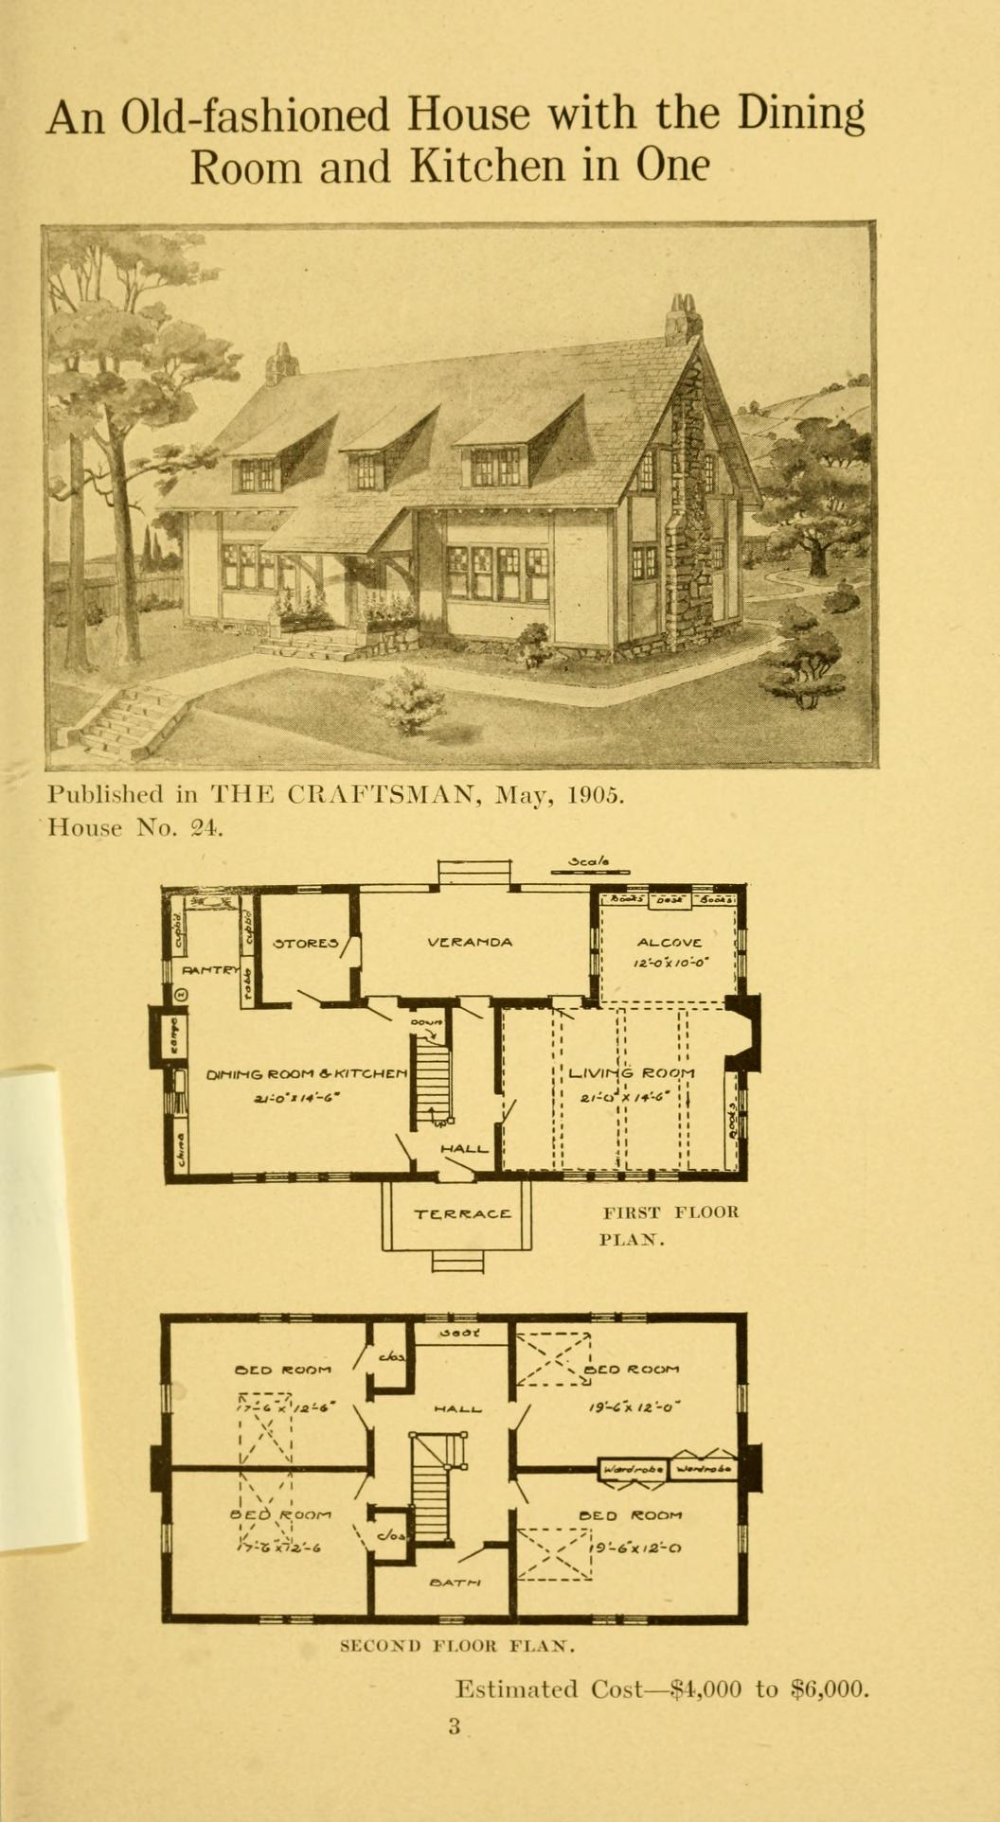 Twenty Four Craftsman Houses With Floor Plans Stickley Gustav 1858 1942 Free Download Borrow Vintage House Plans Floor Plans Architectural Floor Plans